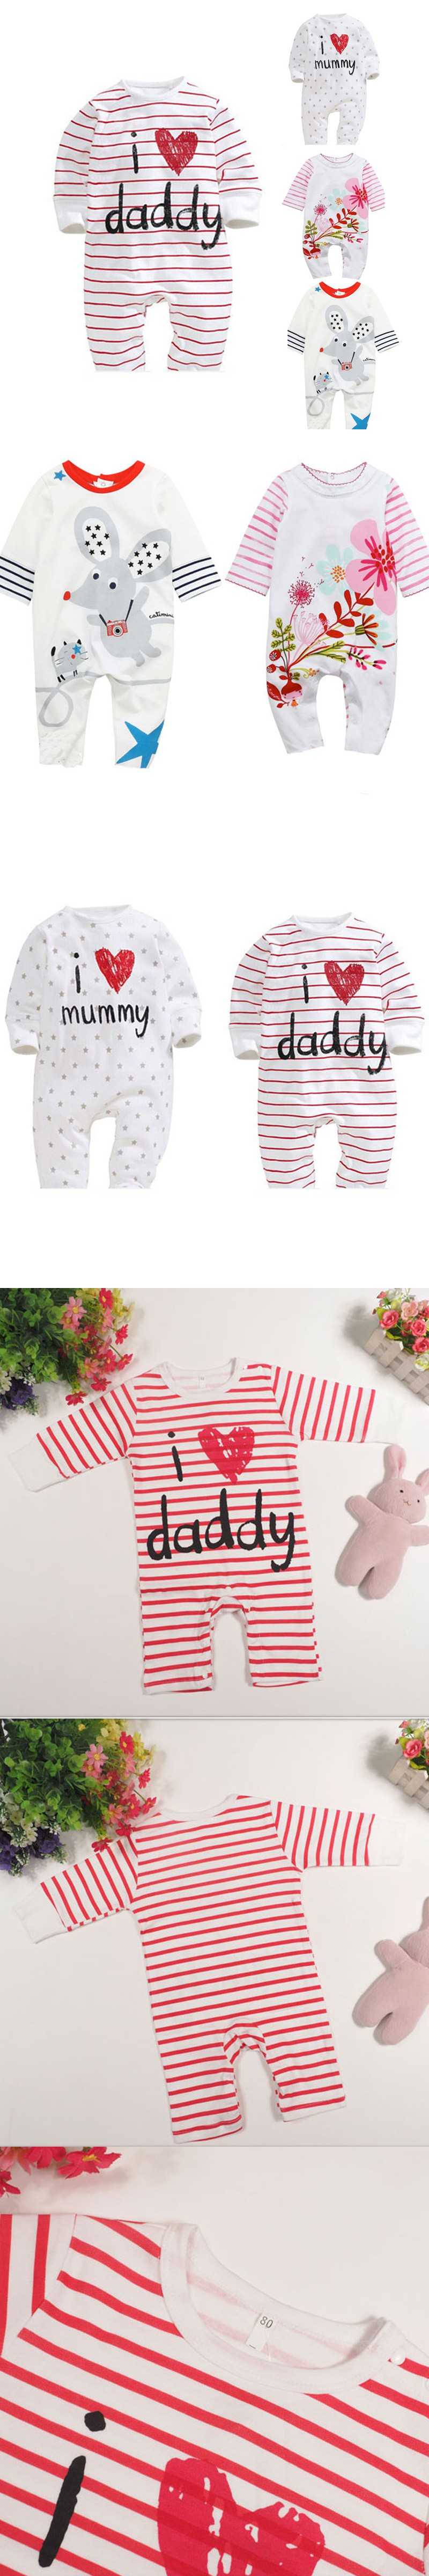 99265b104 Baby Rompers 2016 Newborn I Love Mummy   Daddy Baby Costume Girls ...